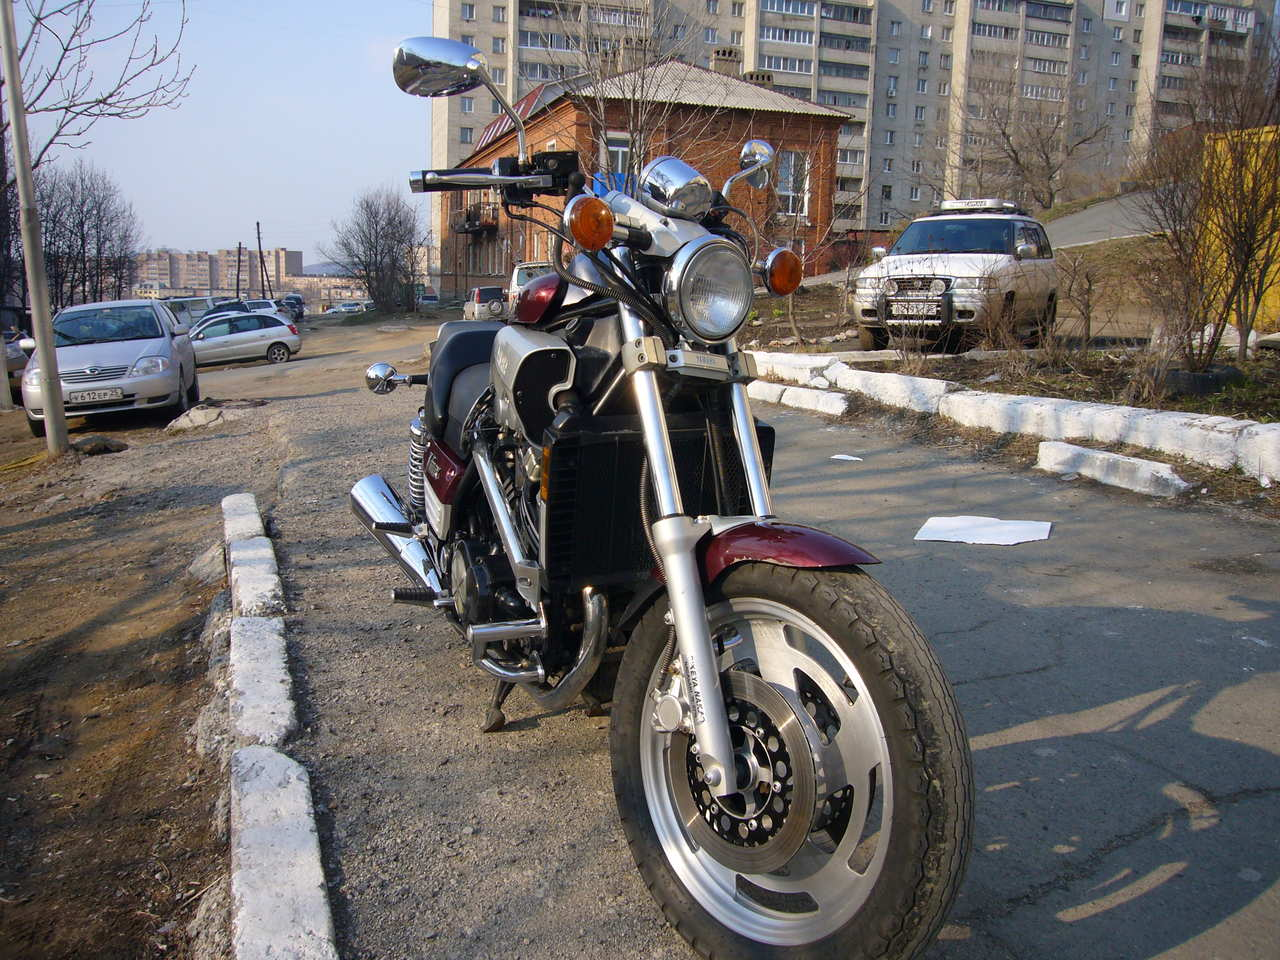 1992 yamaha vmax1200 images 1200cc for sale for Yamaha vmax outboard review